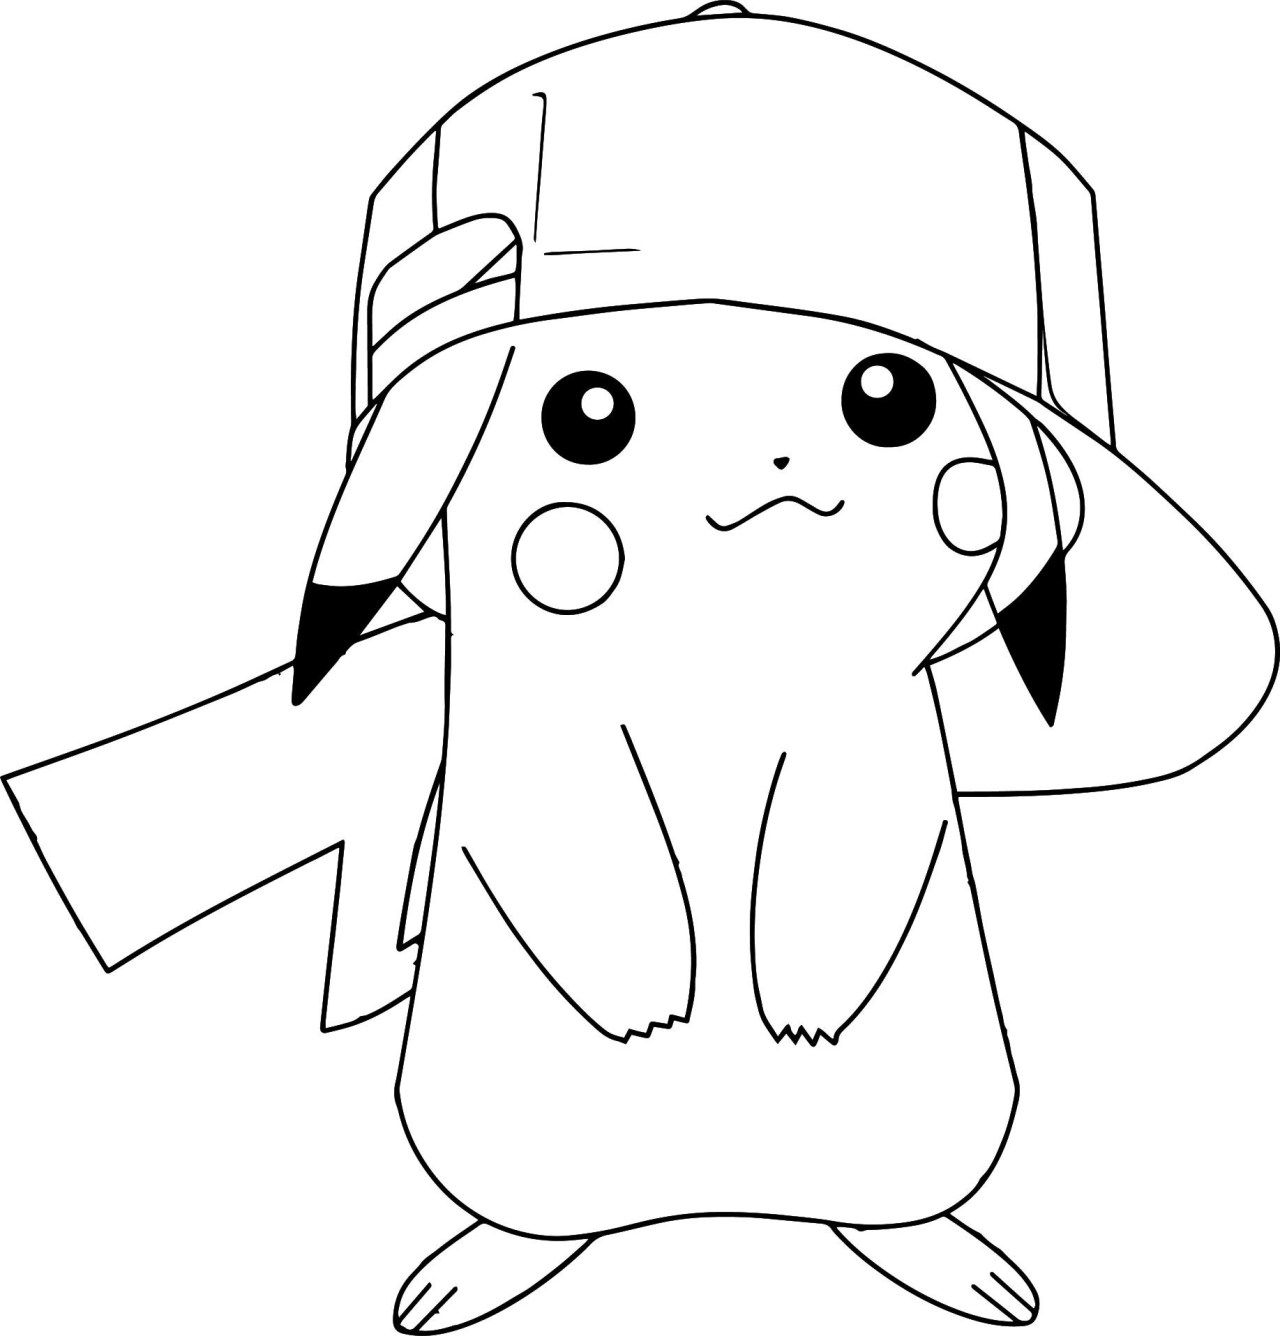 Free Printable Pokemon Coloring Pages Pokemon Coloring Pages